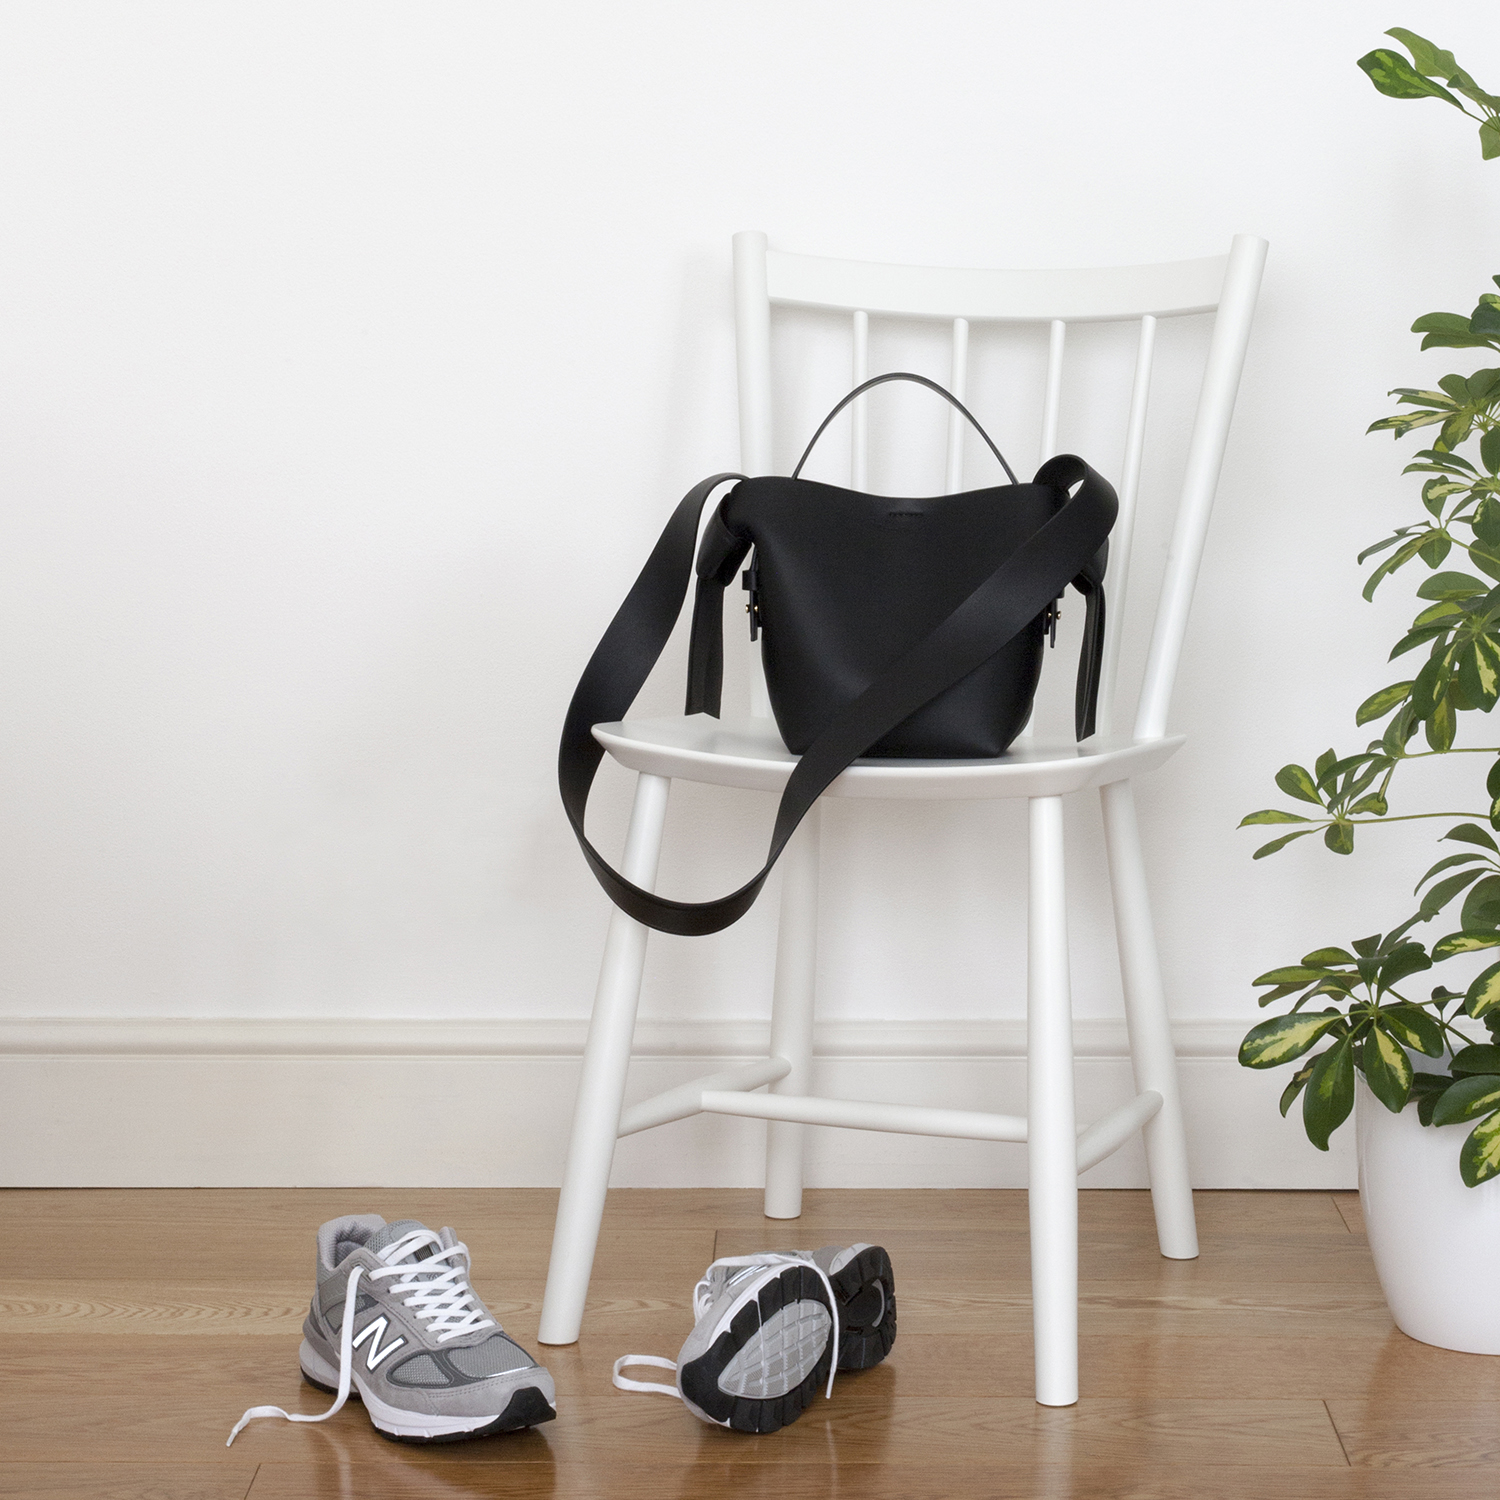 Identify your passions and do more of what you love - Natasha Denness Coaching (photo of a chair, bag and trainers)